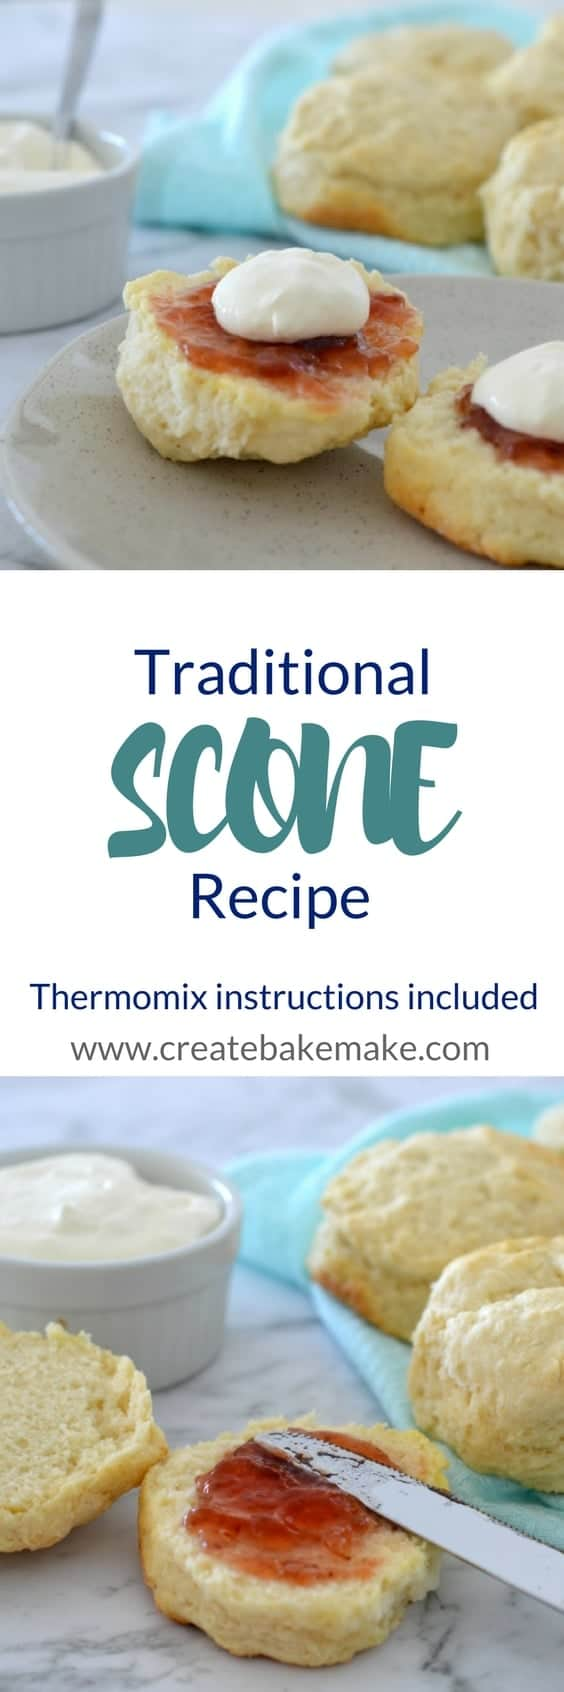 Traditional Scone Recipe